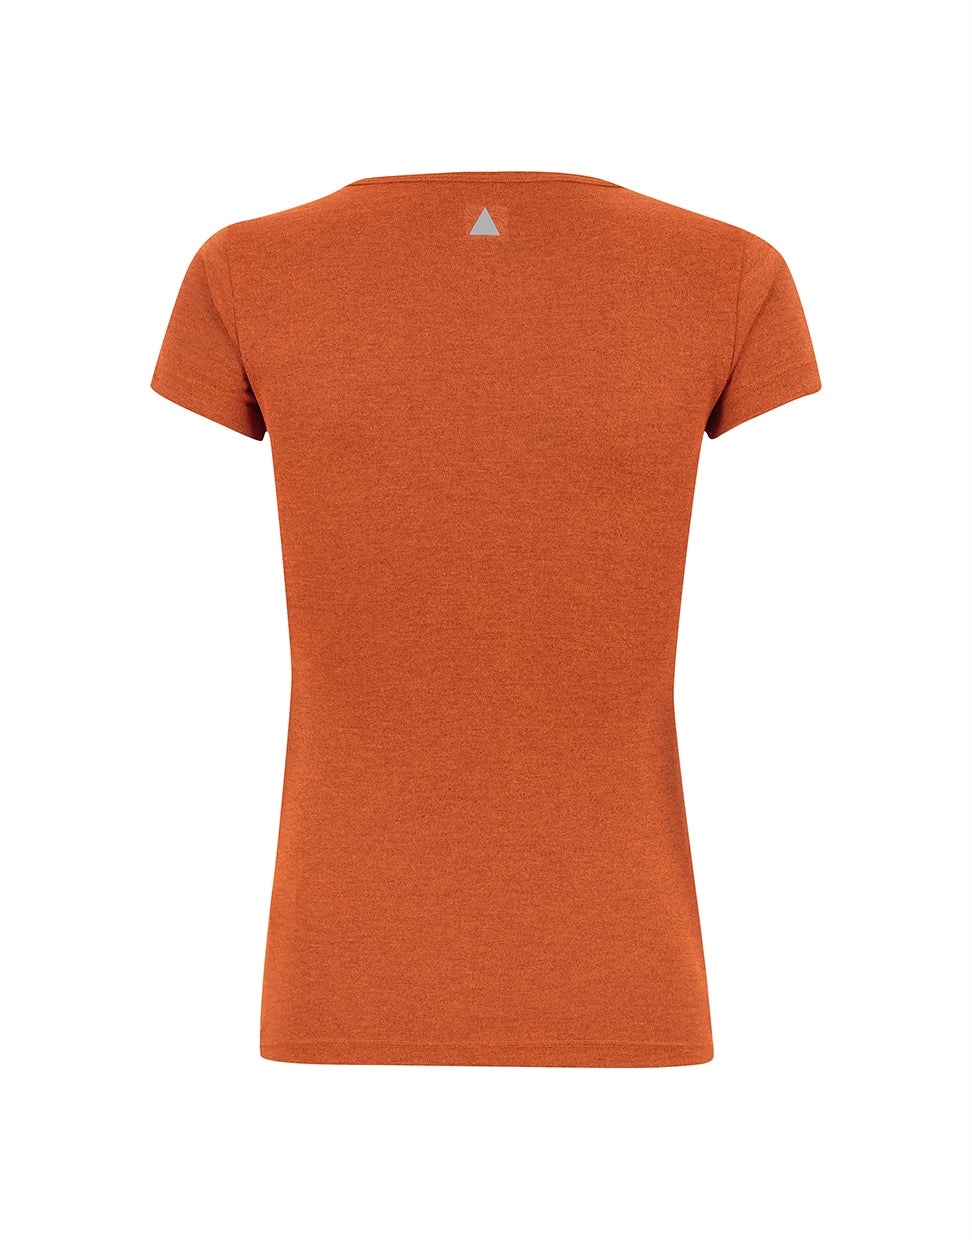 Camiseta Basic Color Mostarda